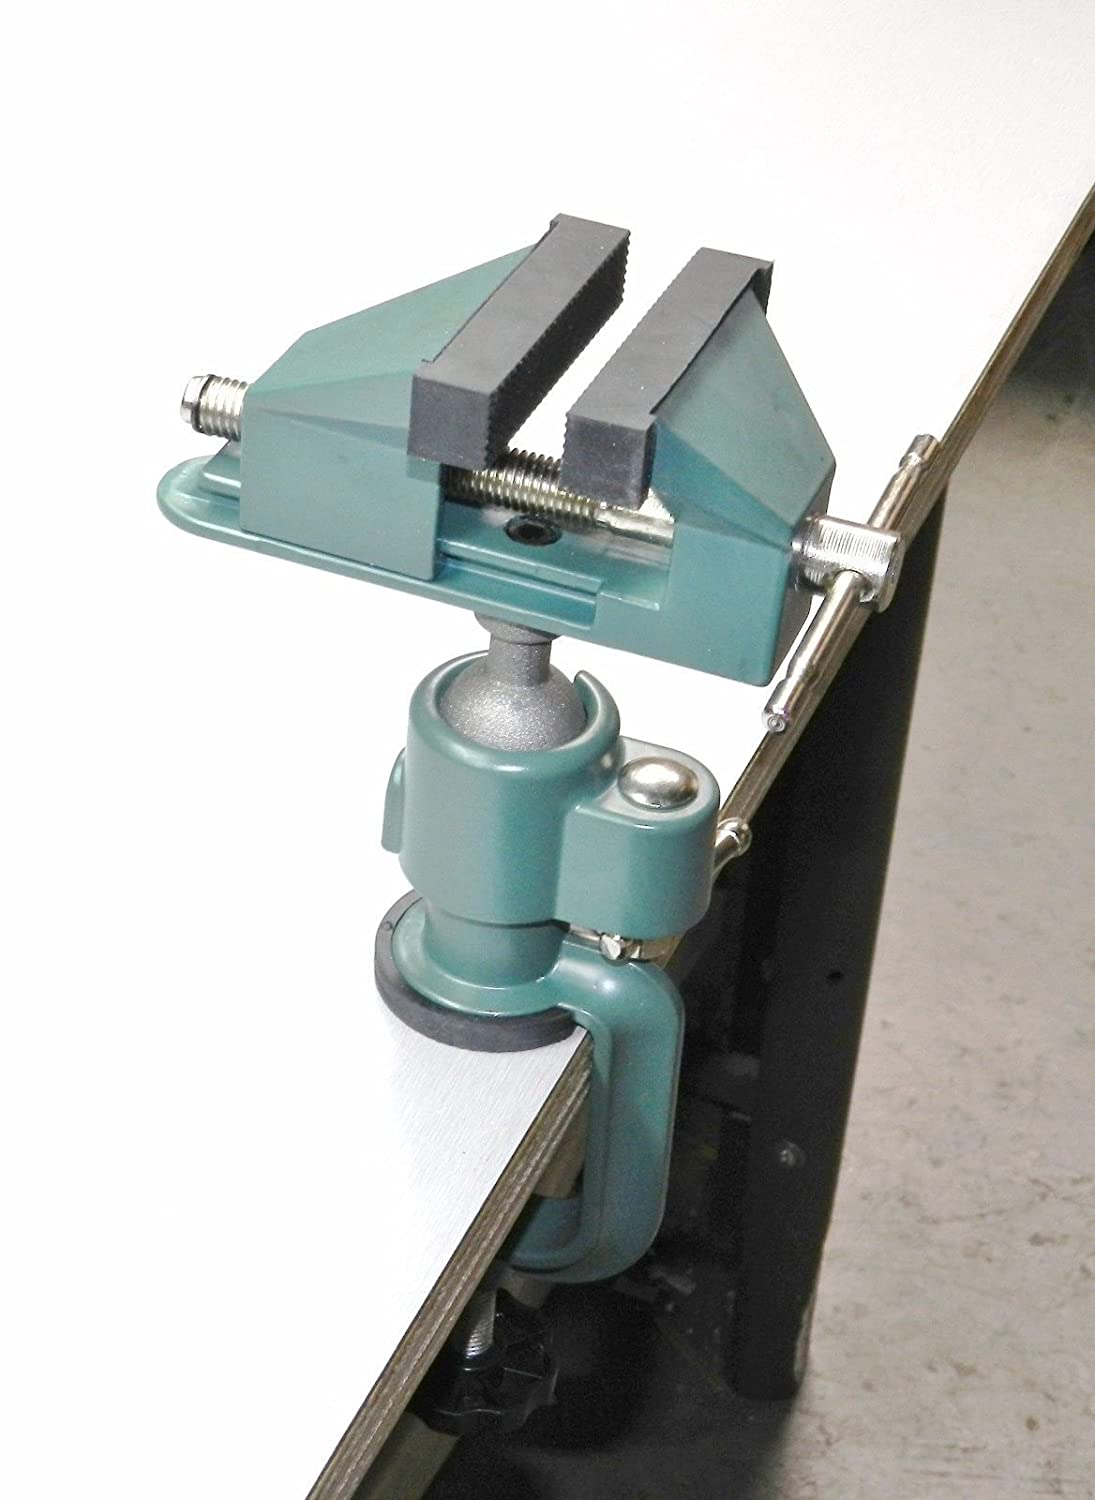 Bench Vise Swivel 3 Tabletop Clamp Base Vice Tilts Rotates 360 Panavise Circuit Board Holder W Hobby Craft